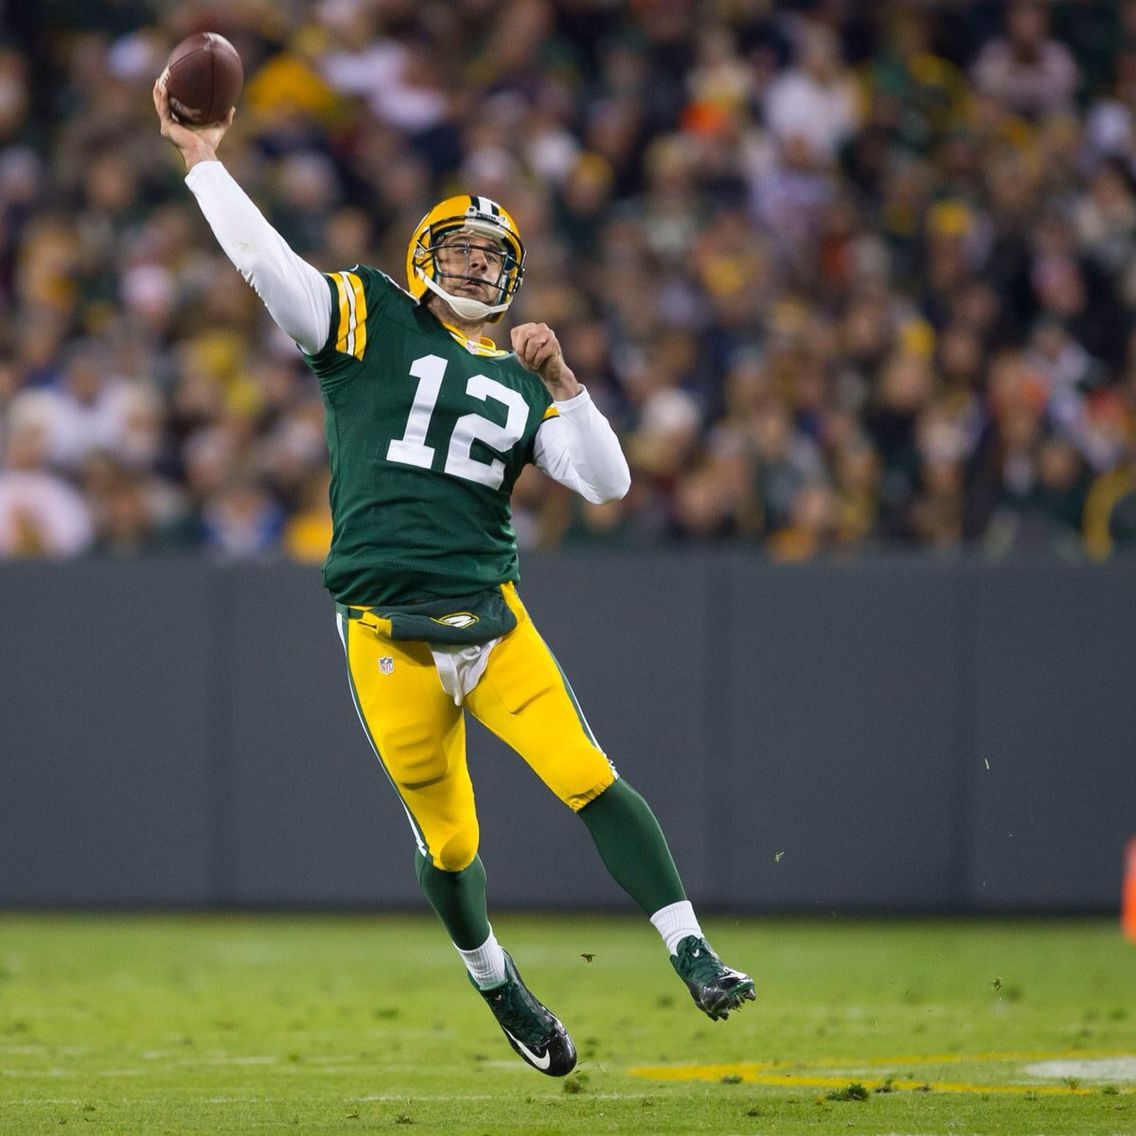 Rodgers Is Just Unbelievably Good Another Fantastic Game Packersvsbears Packernation Green Bay Packers Aaron Rodgers Packers Vs Bears